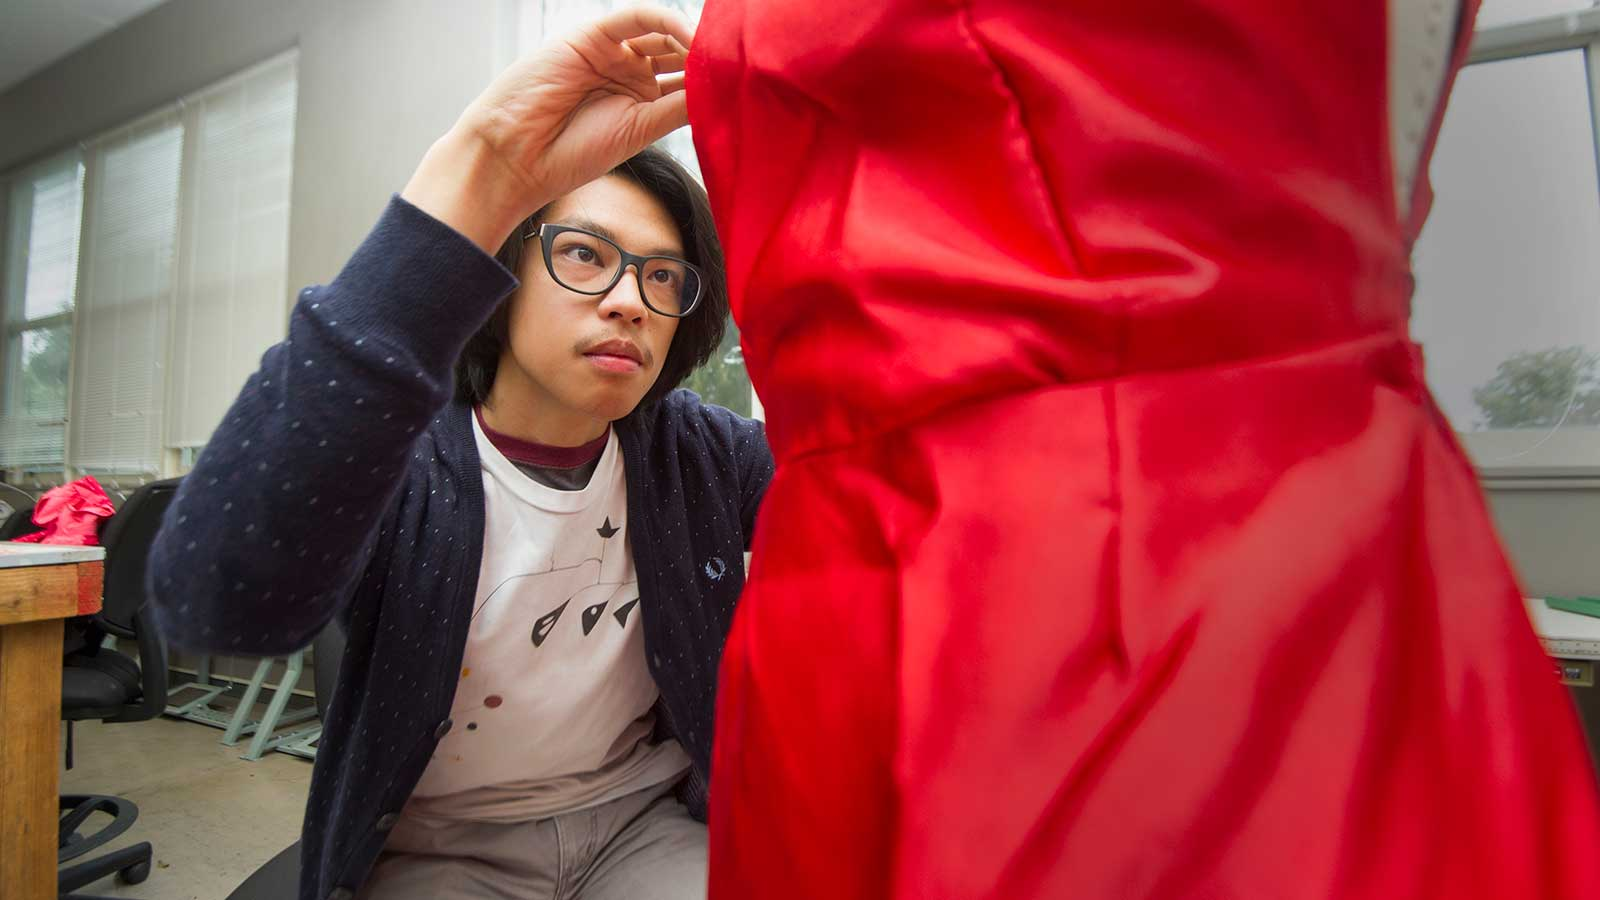 Male student adjusting a red dress on a manikin